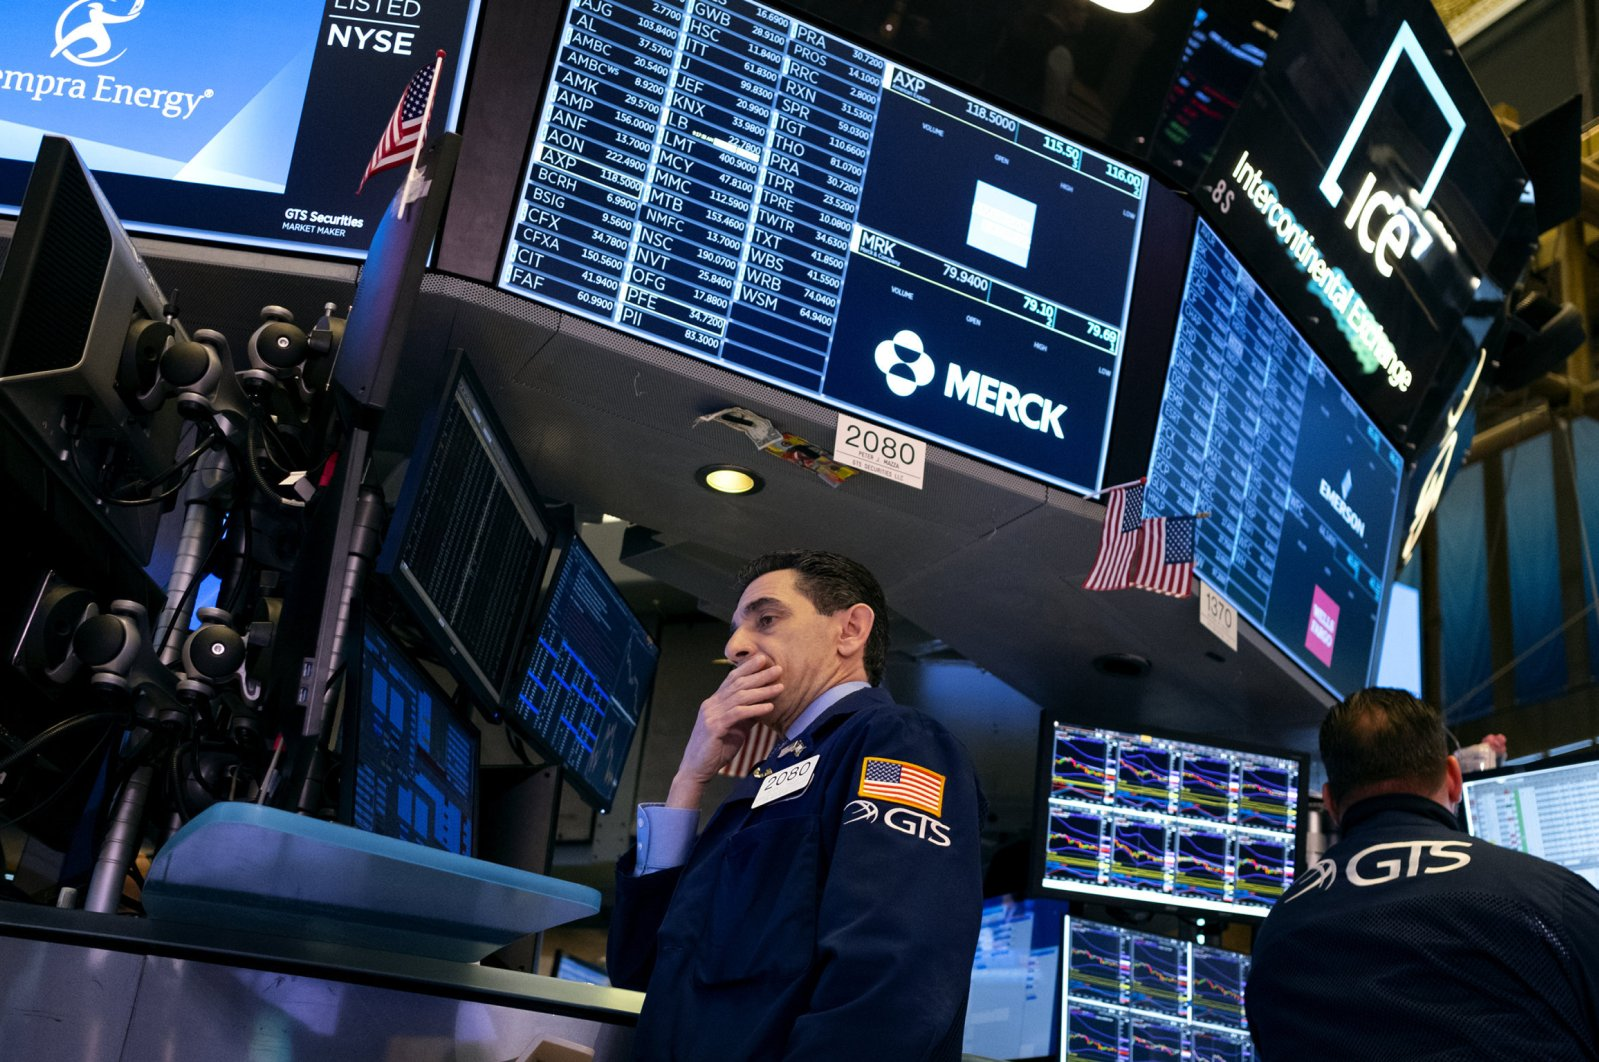 Trader Peter Mazza works on the floor of the New York Stock Exchange, in New York, United States, Feb. 27, 2020. (AP Photo)